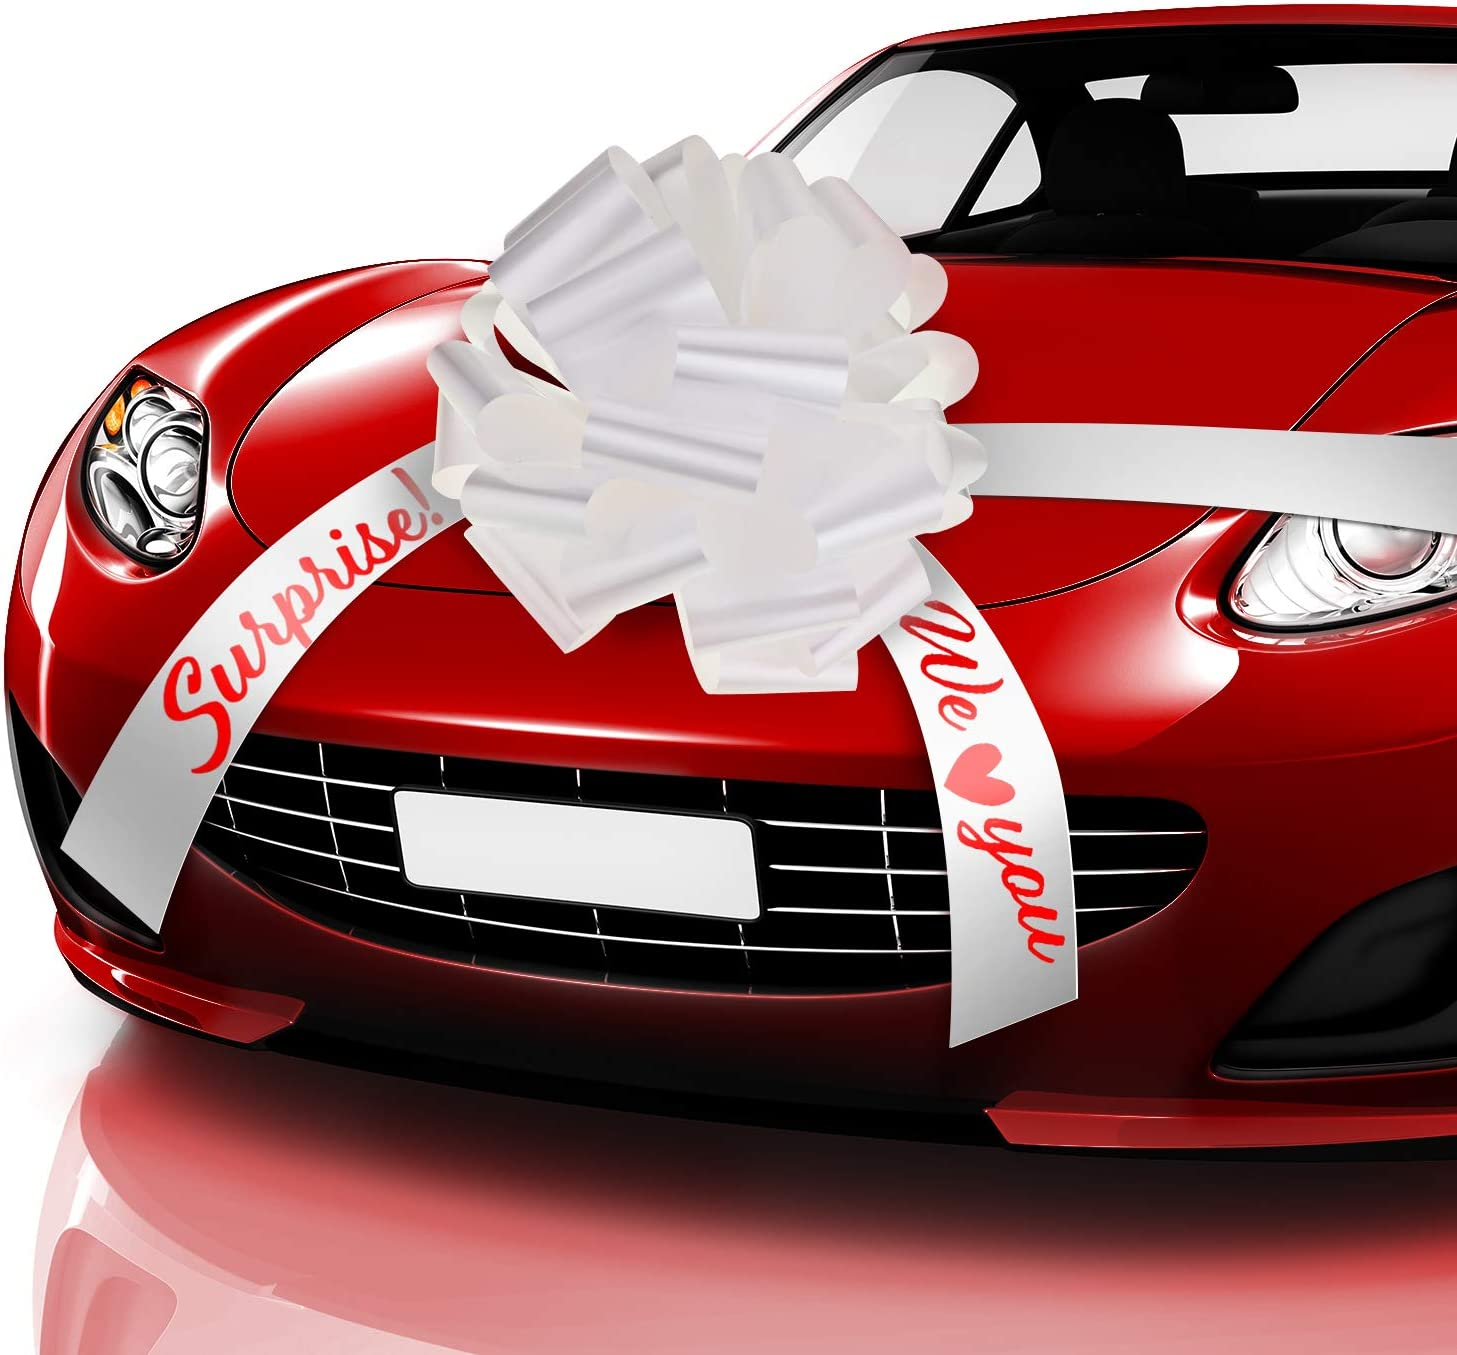 20 Inches Car Bow Pull White Car Present Wrapping Bow, We Love You Surprise Car Bow with 20 Feet Car Ribbon for Car Decor Wedding New Houses Party Celebration